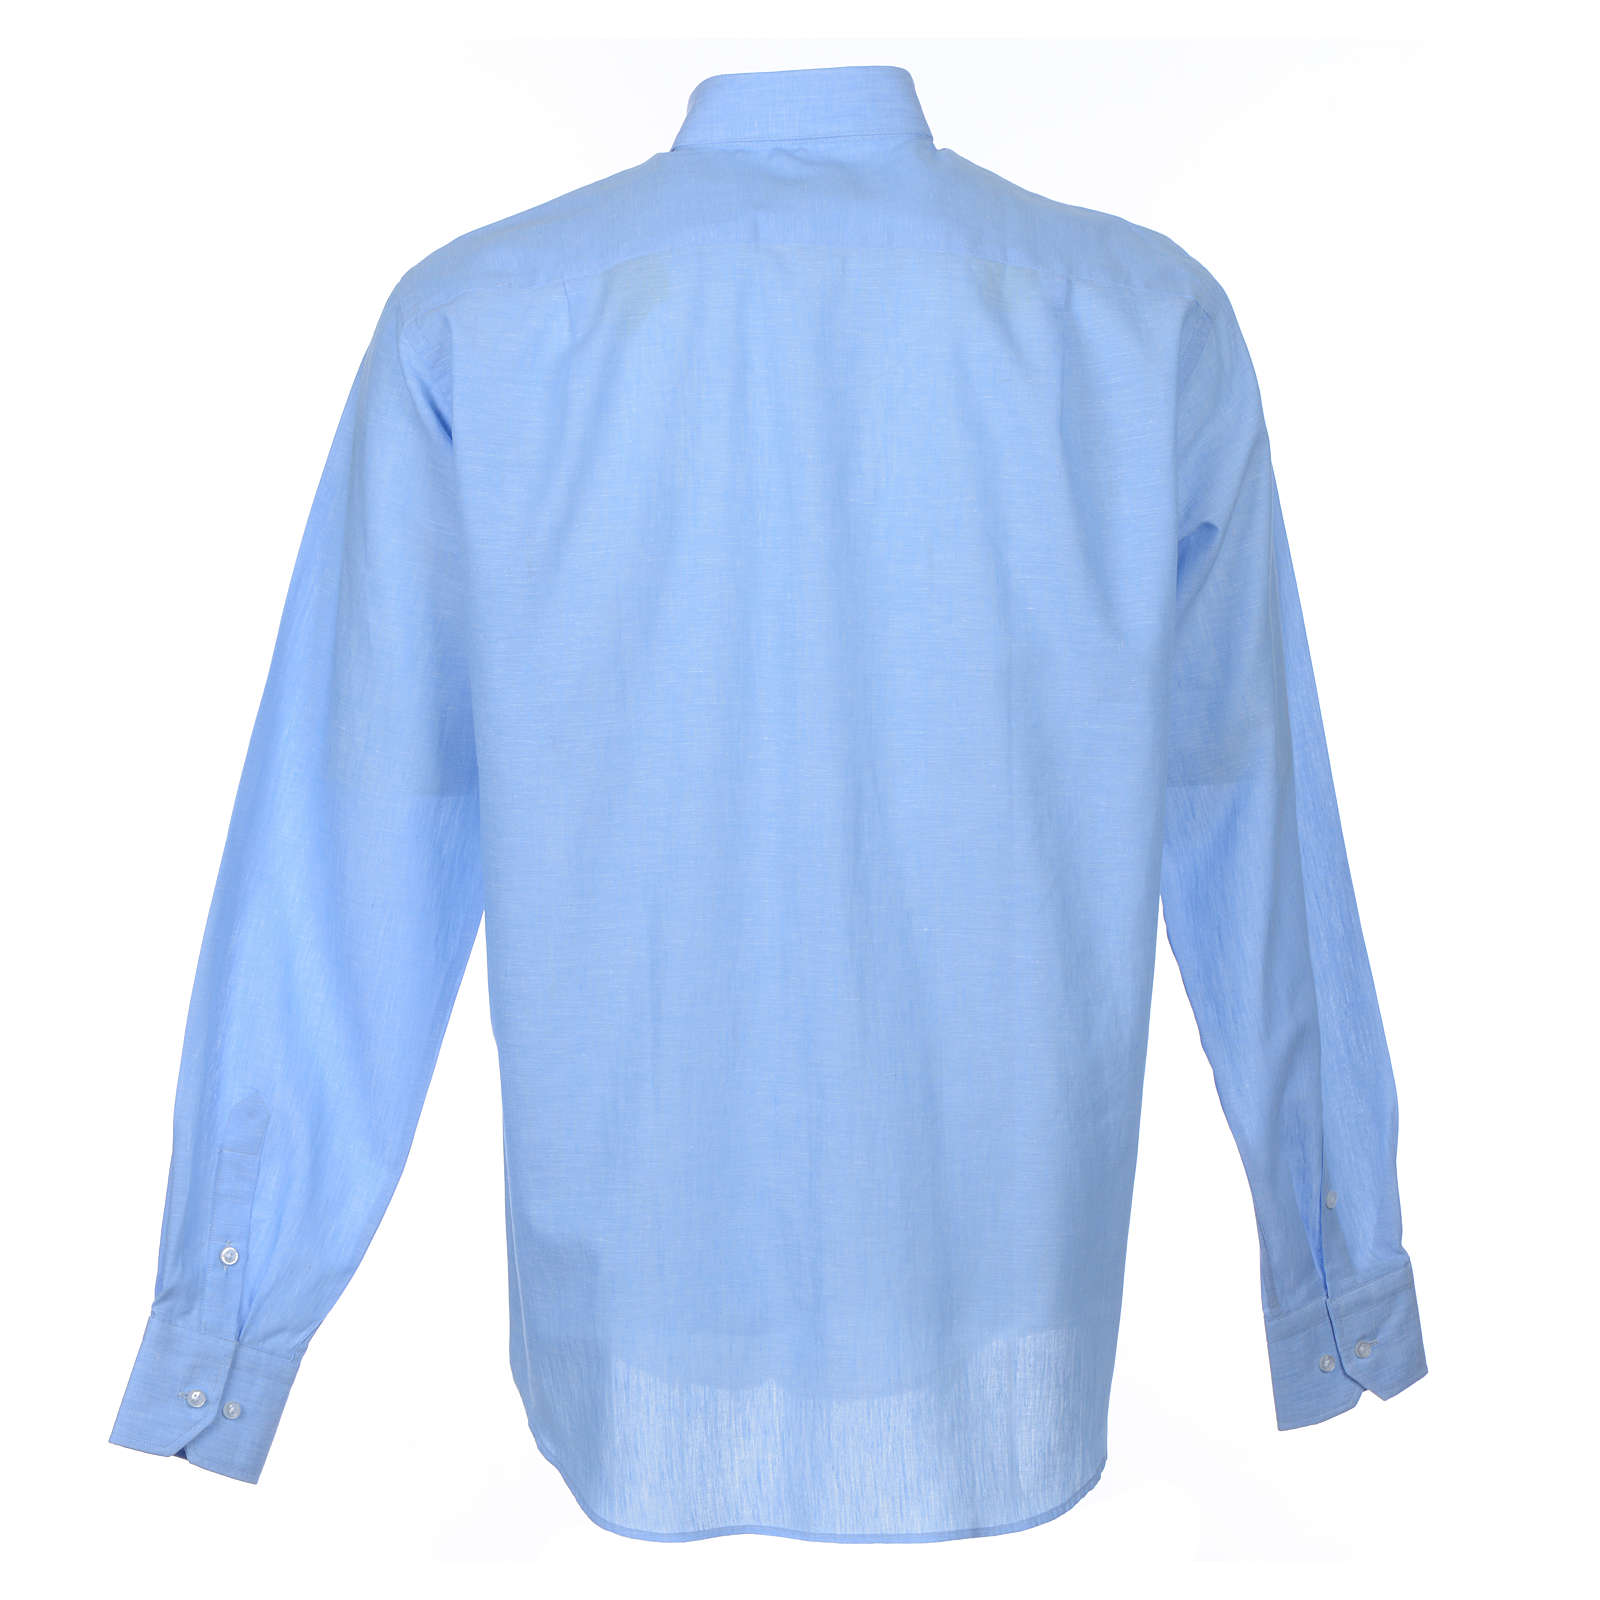 Clergyman shirt, long sleeves in light blue linen 4